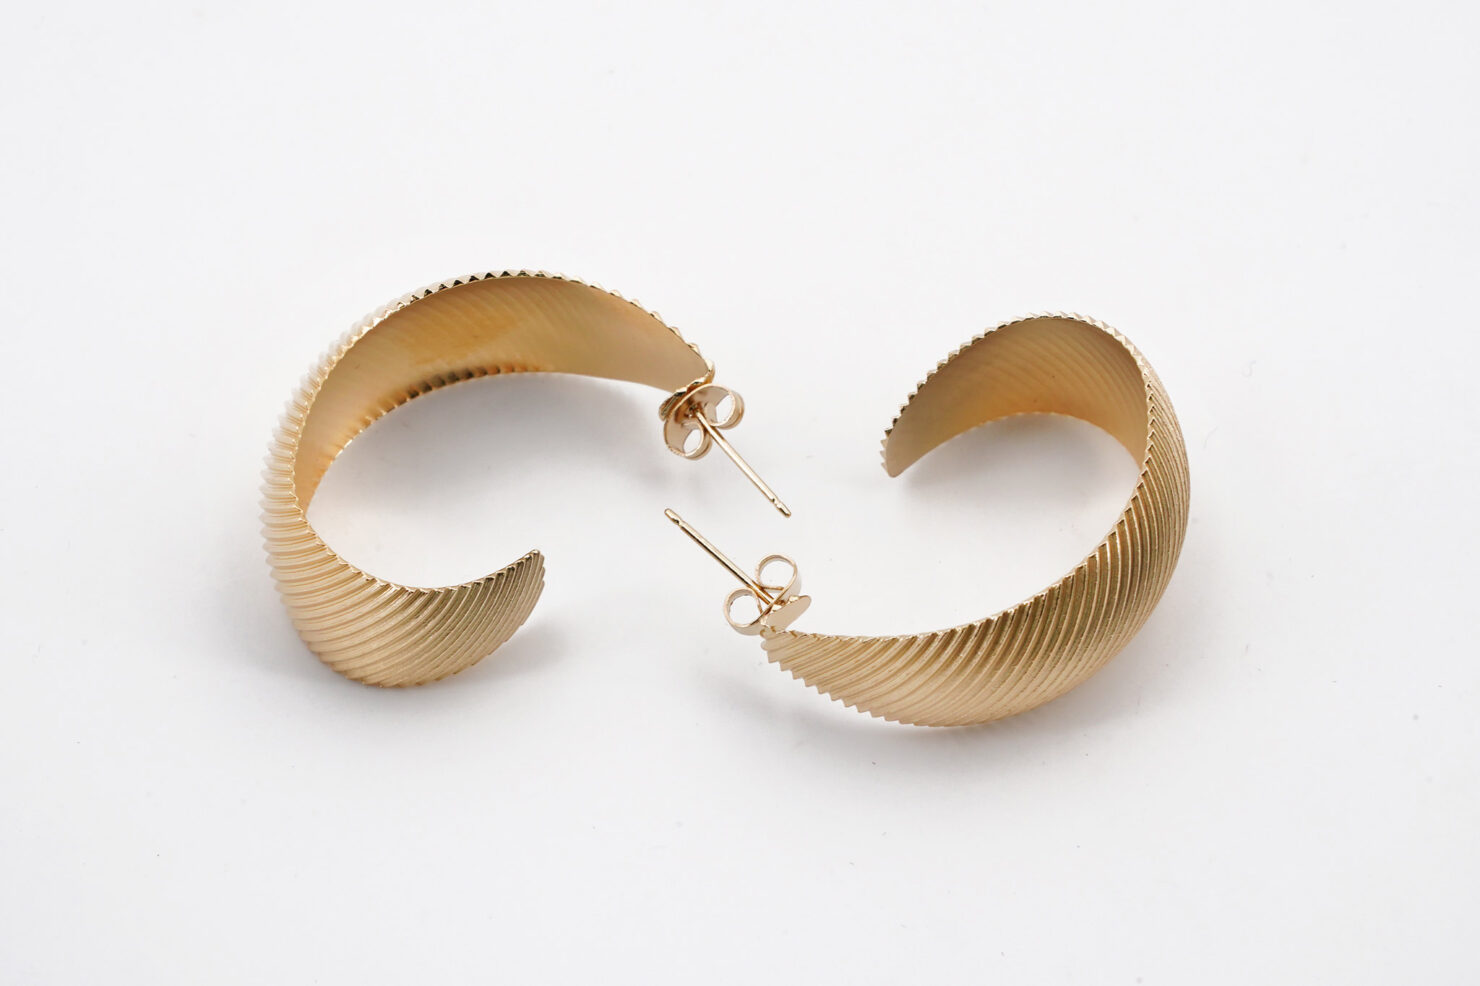 UDAIPUR HOOP EARRINGS - MEDICINE DOUCE